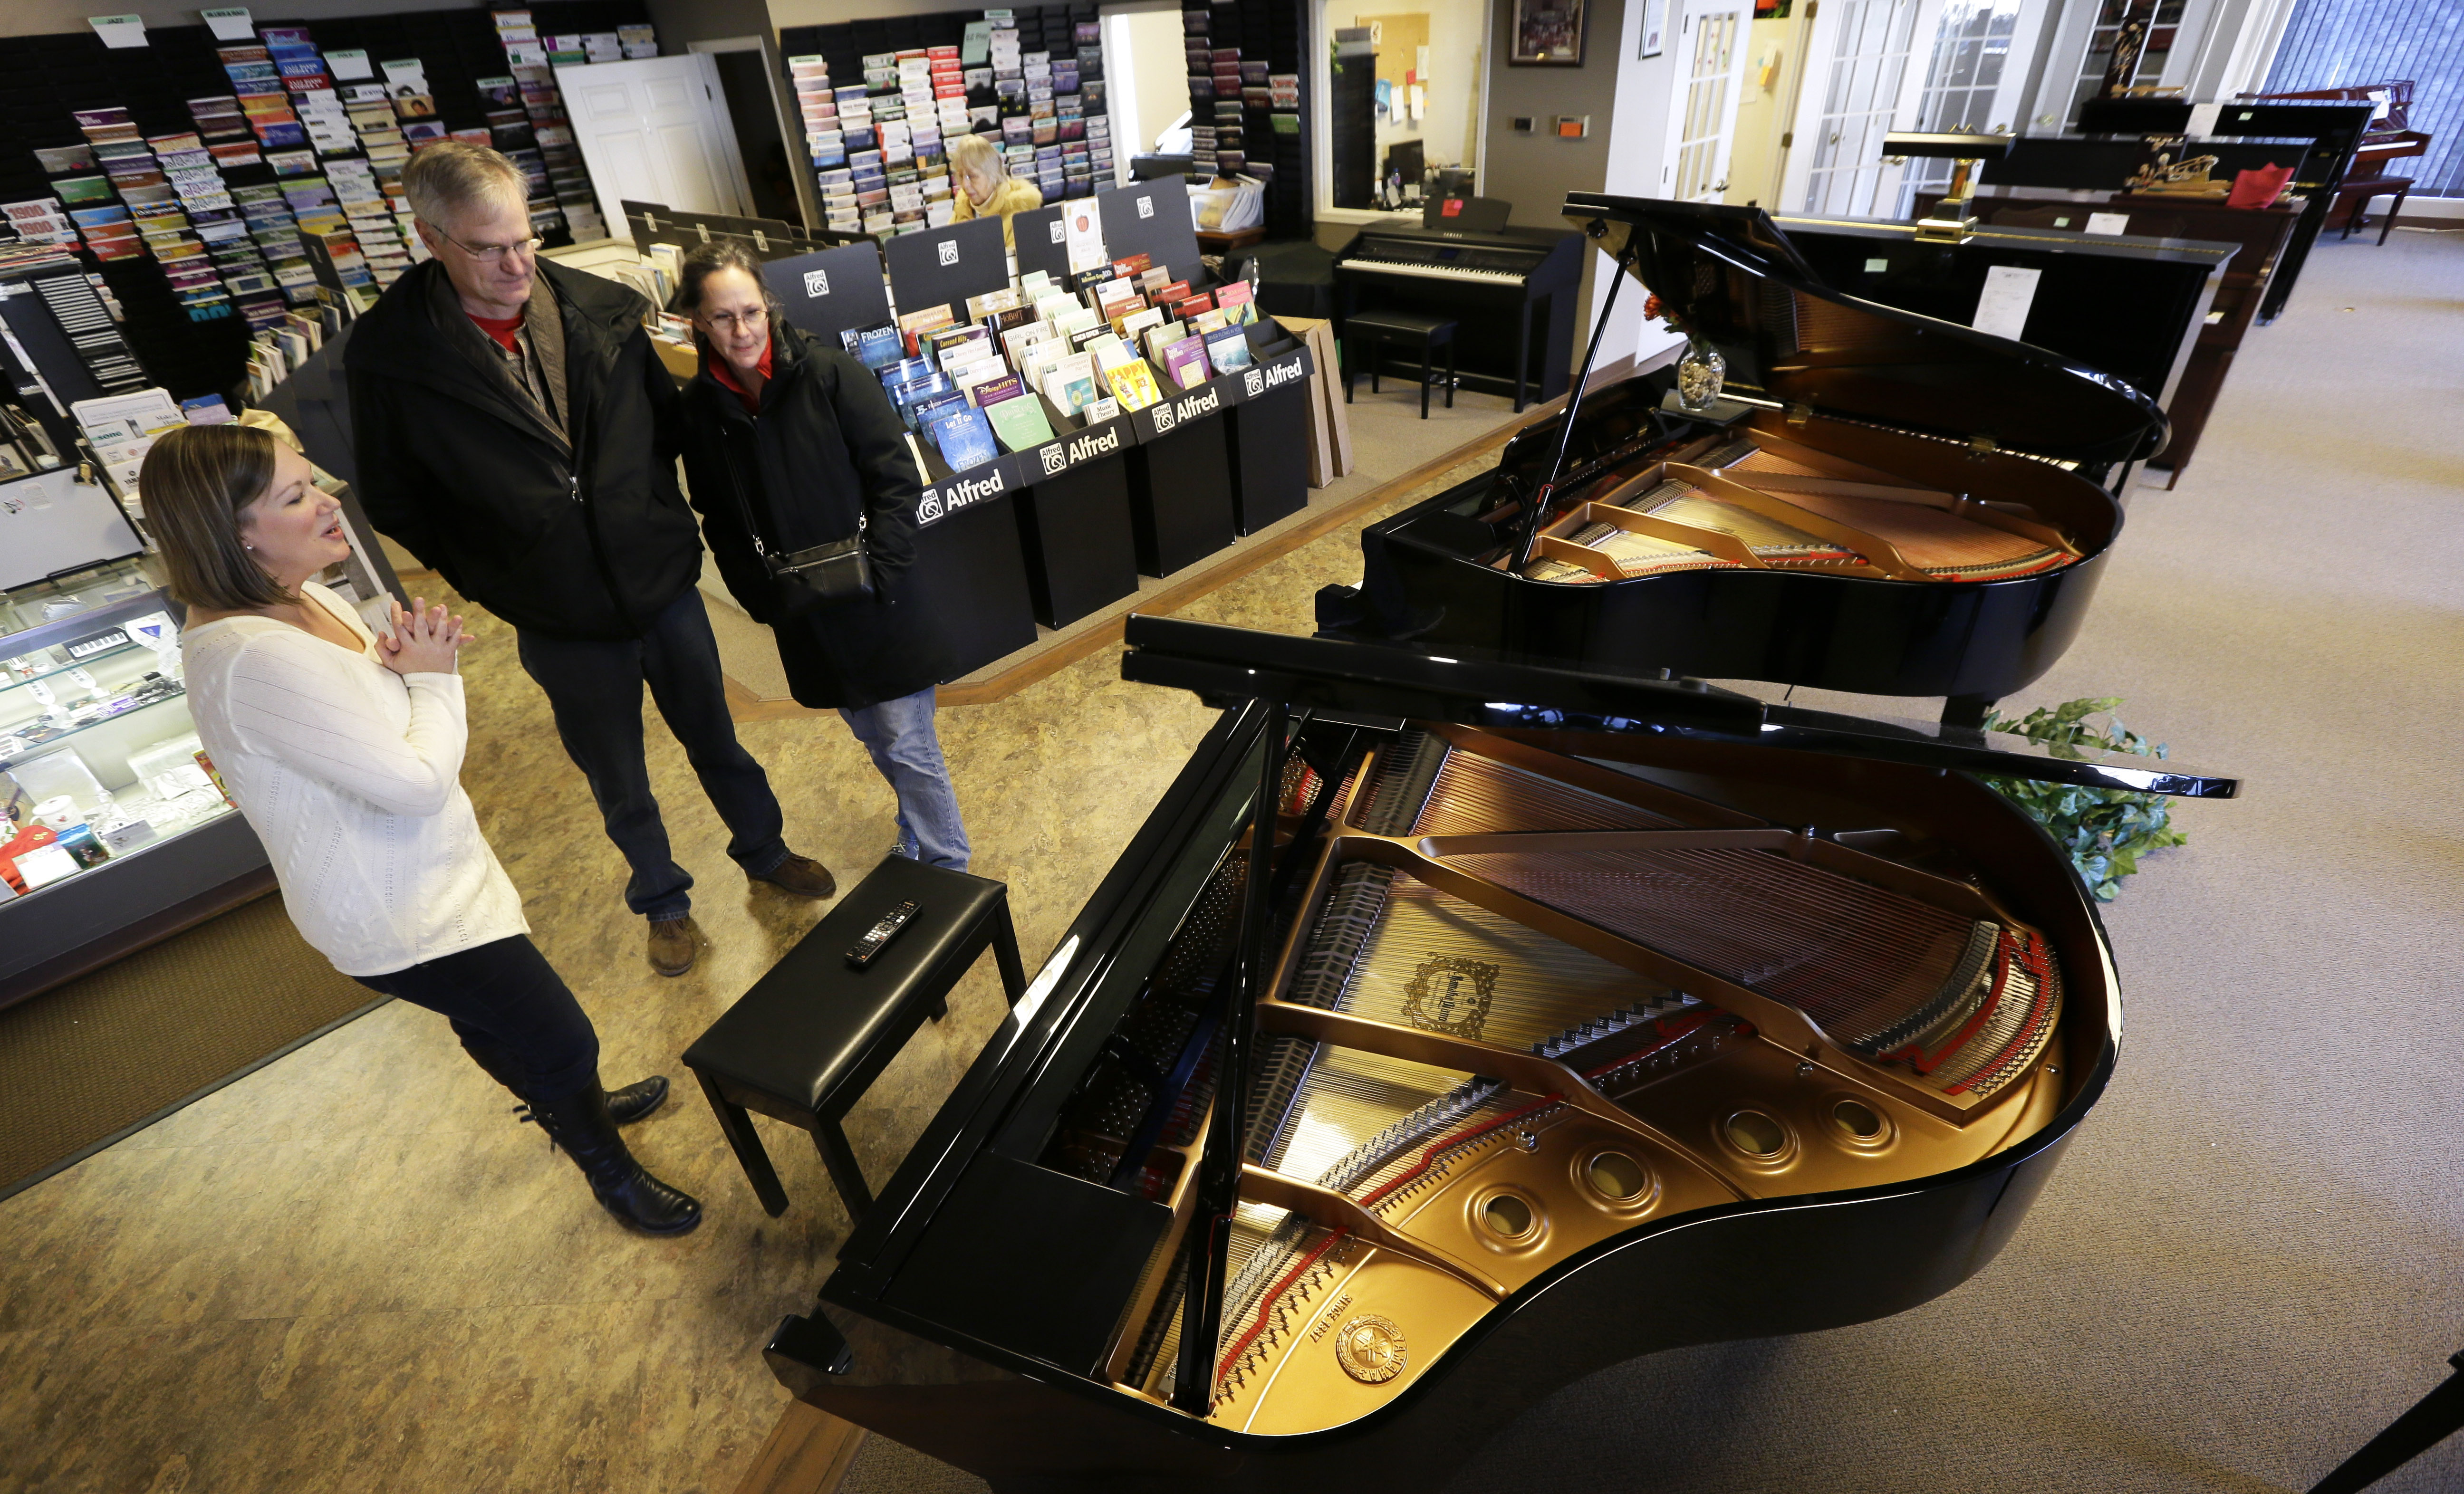 bettendorf ia piano stores closing as fewer children taking up instrument. Black Bedroom Furniture Sets. Home Design Ideas